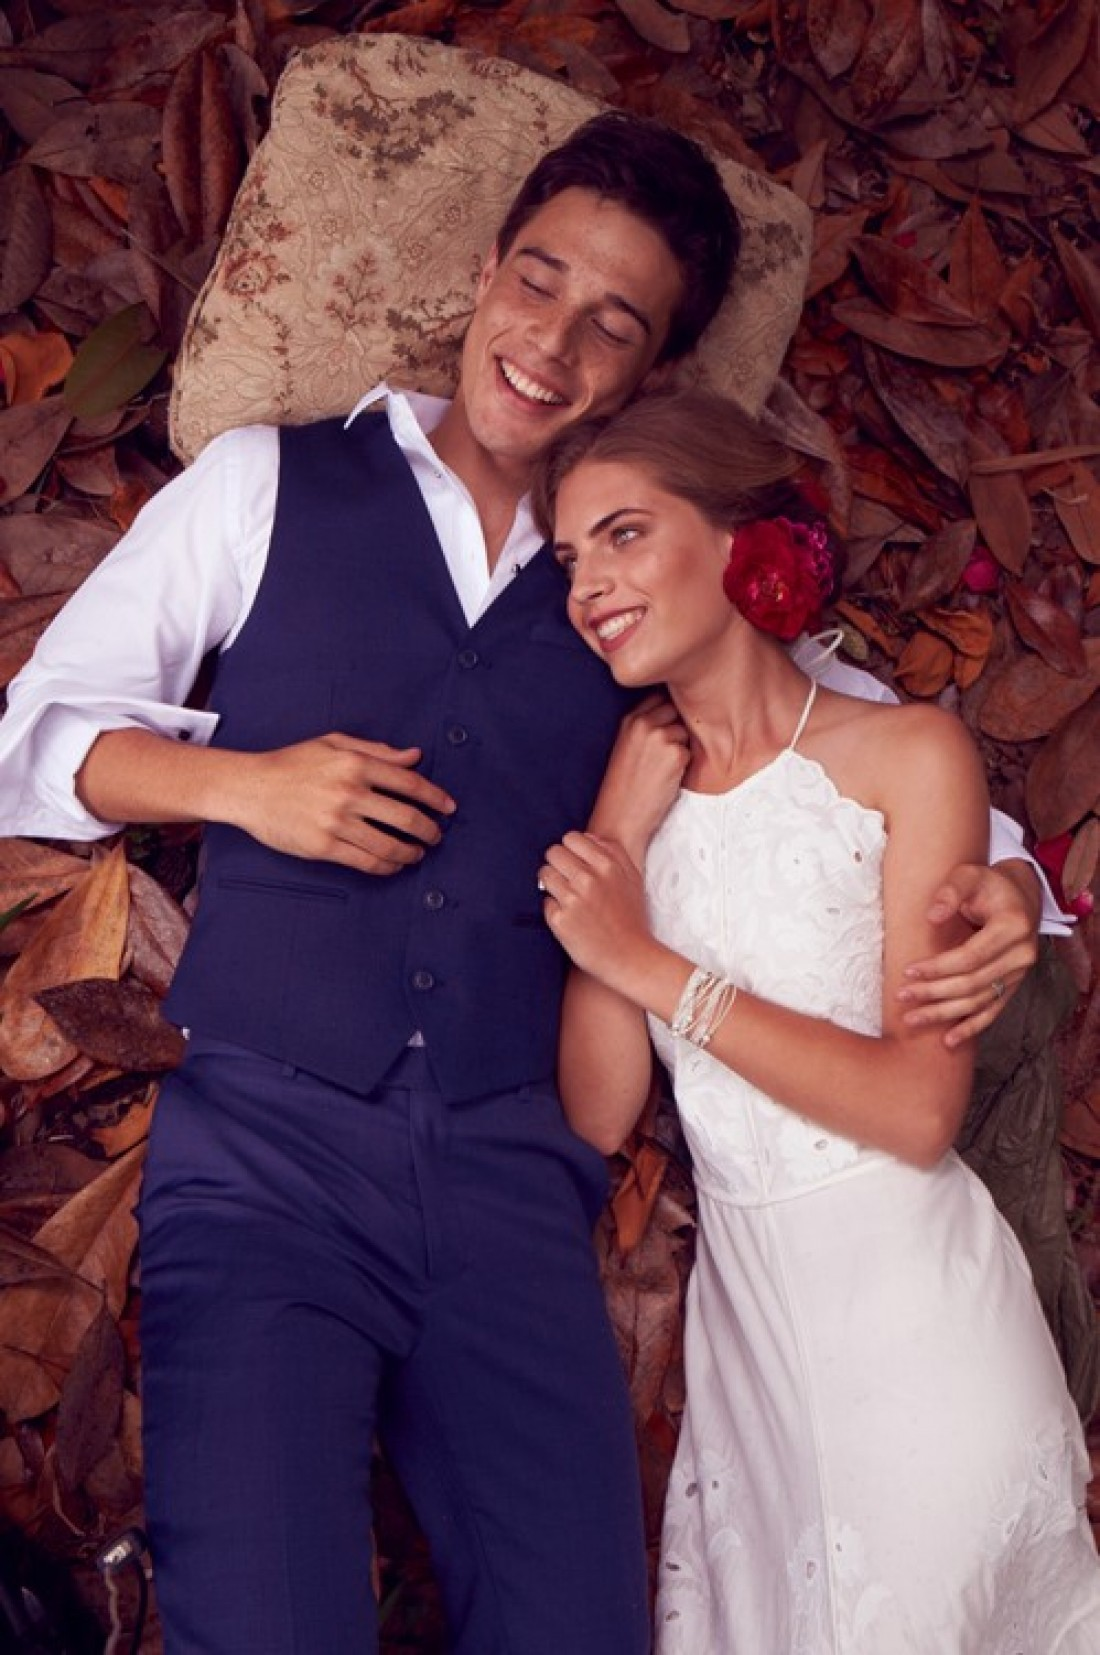 Bernie & Sean photographed by Steve Tilley for New Zealand Weddings Magazine : Styling by Ana Macdonald